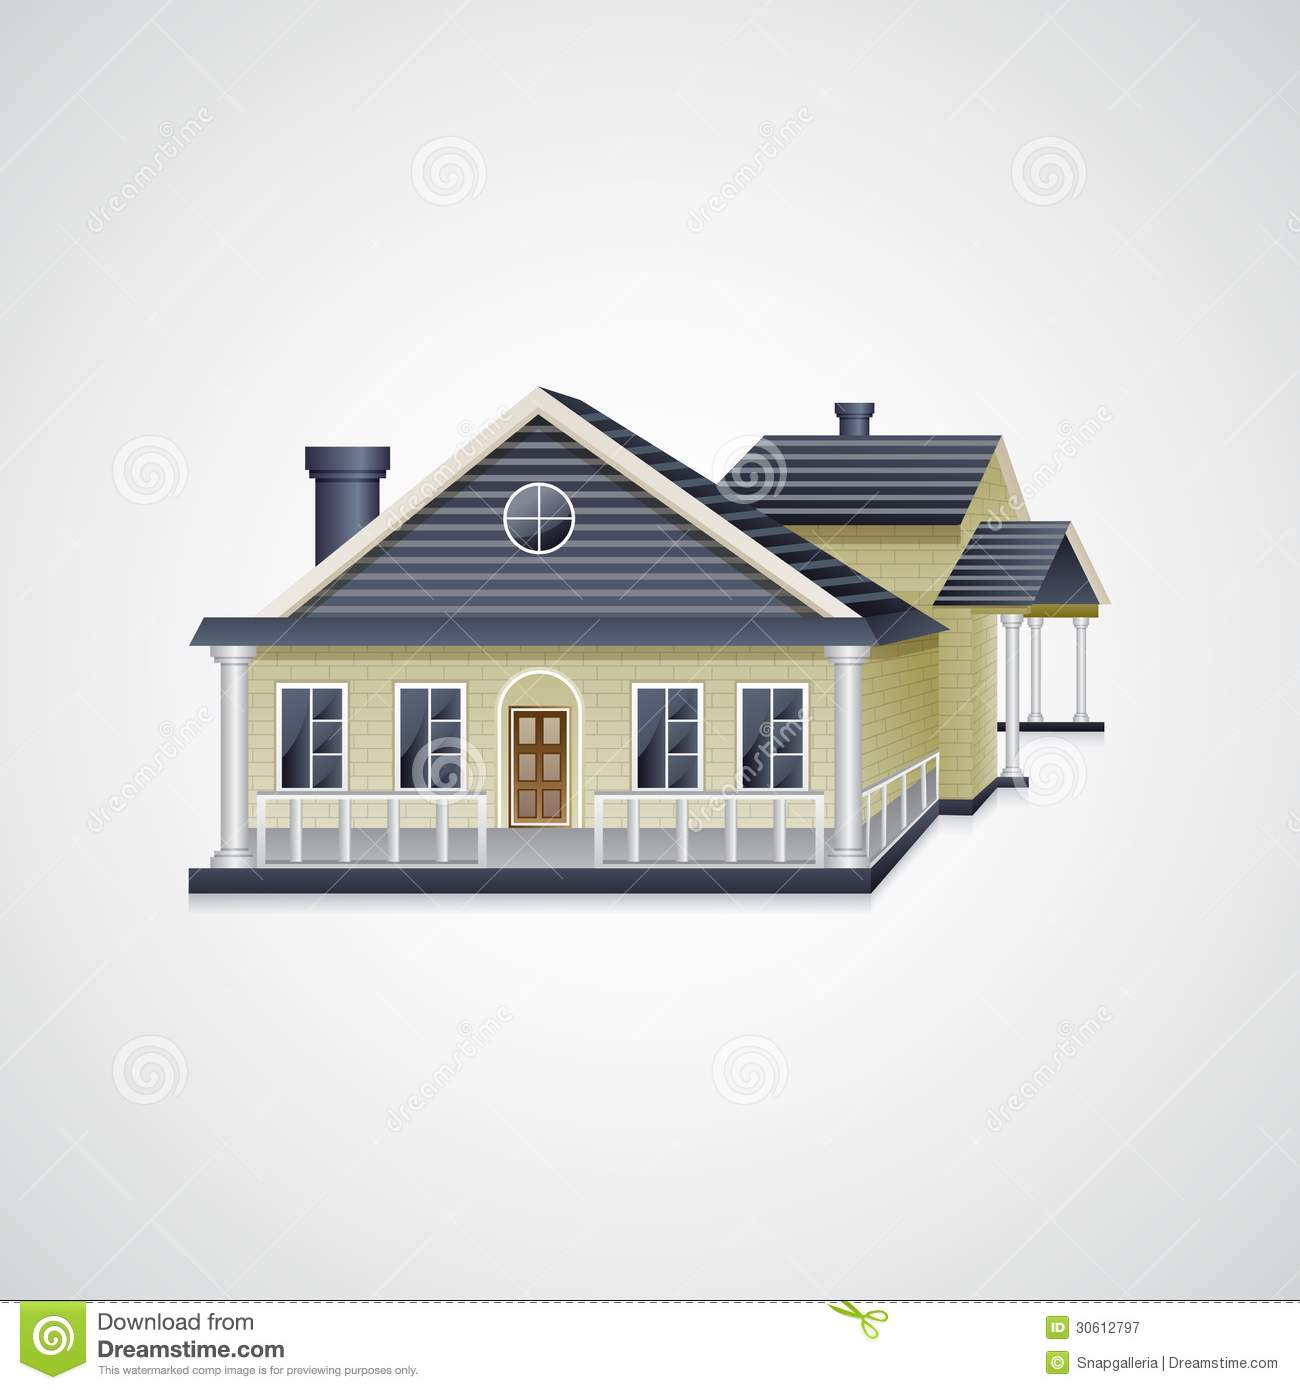 Bungalow House Royalty Free Stock Photography Image 30612797